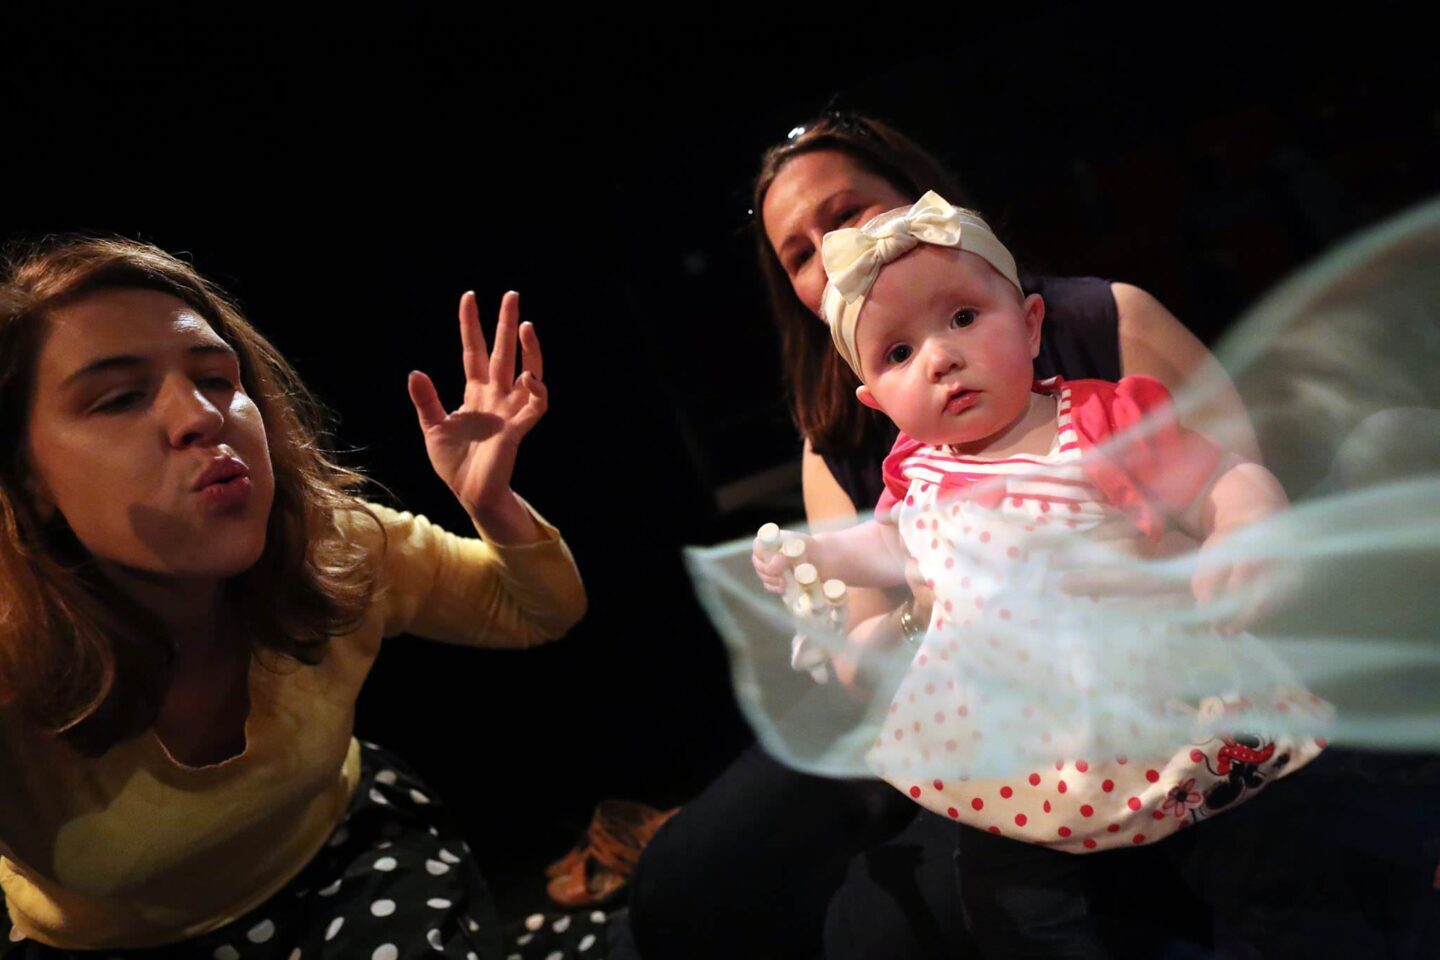 a performer blows a scarf that flies in front of a baby who watches along with its mother